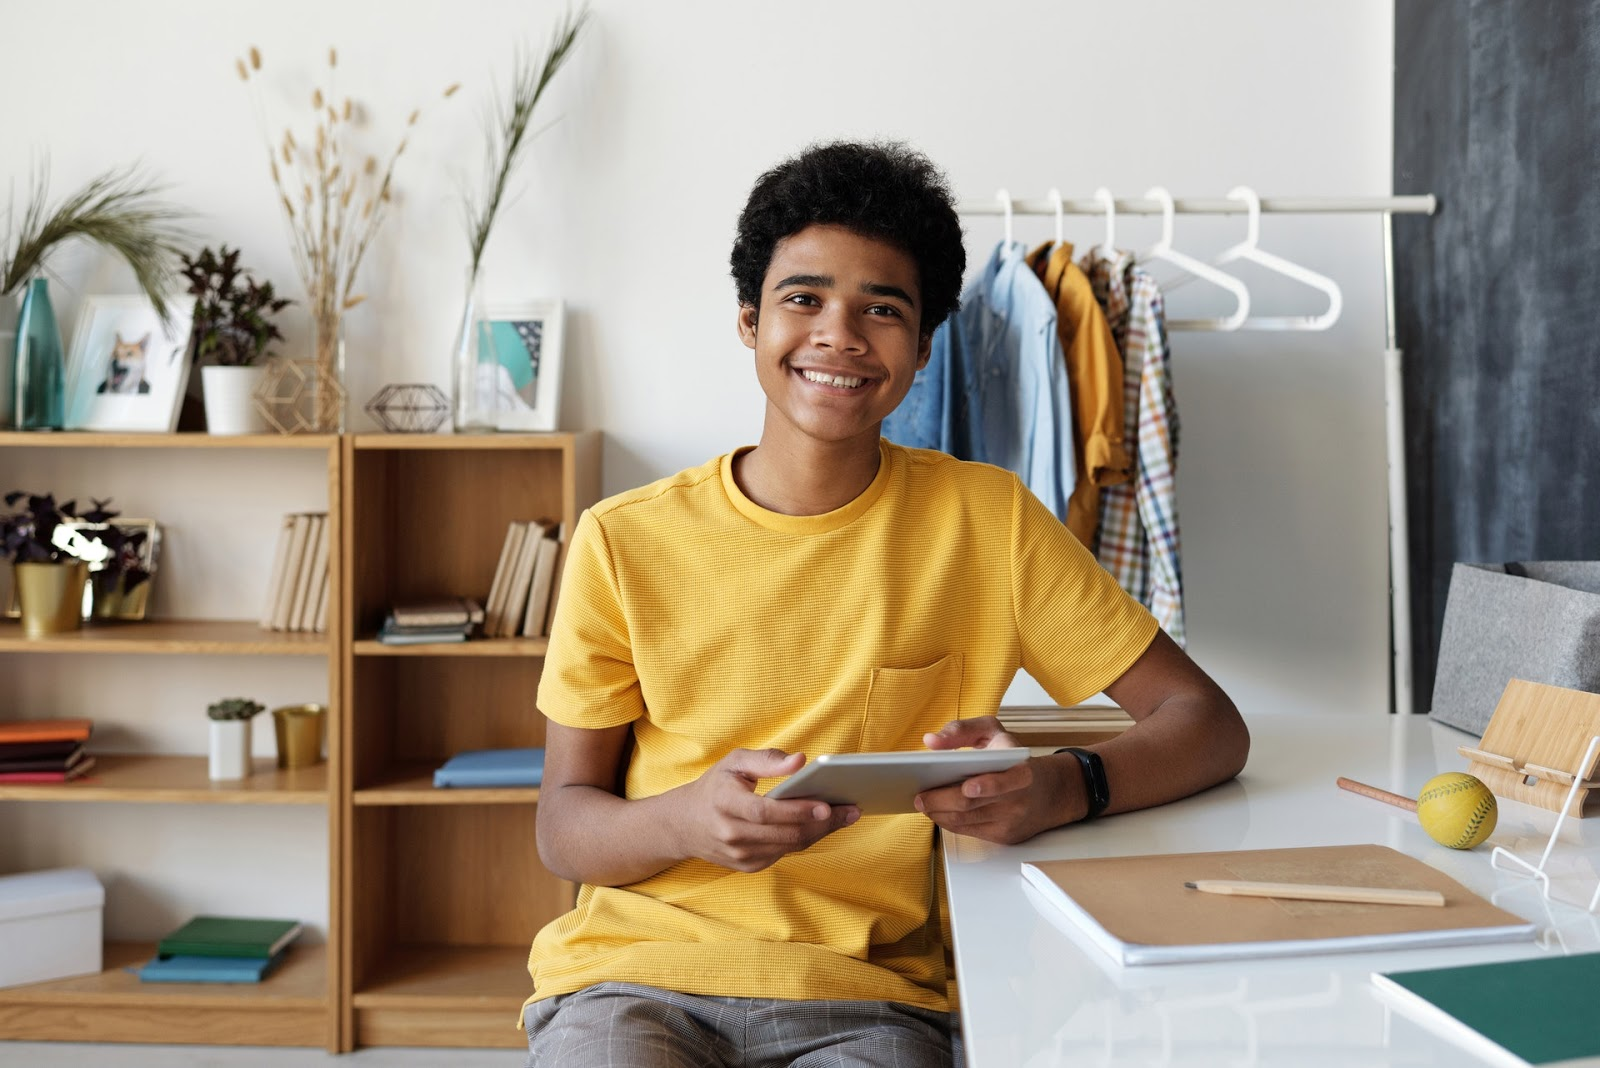 Cheerful teen smiling at the camera with his tablet in his hand